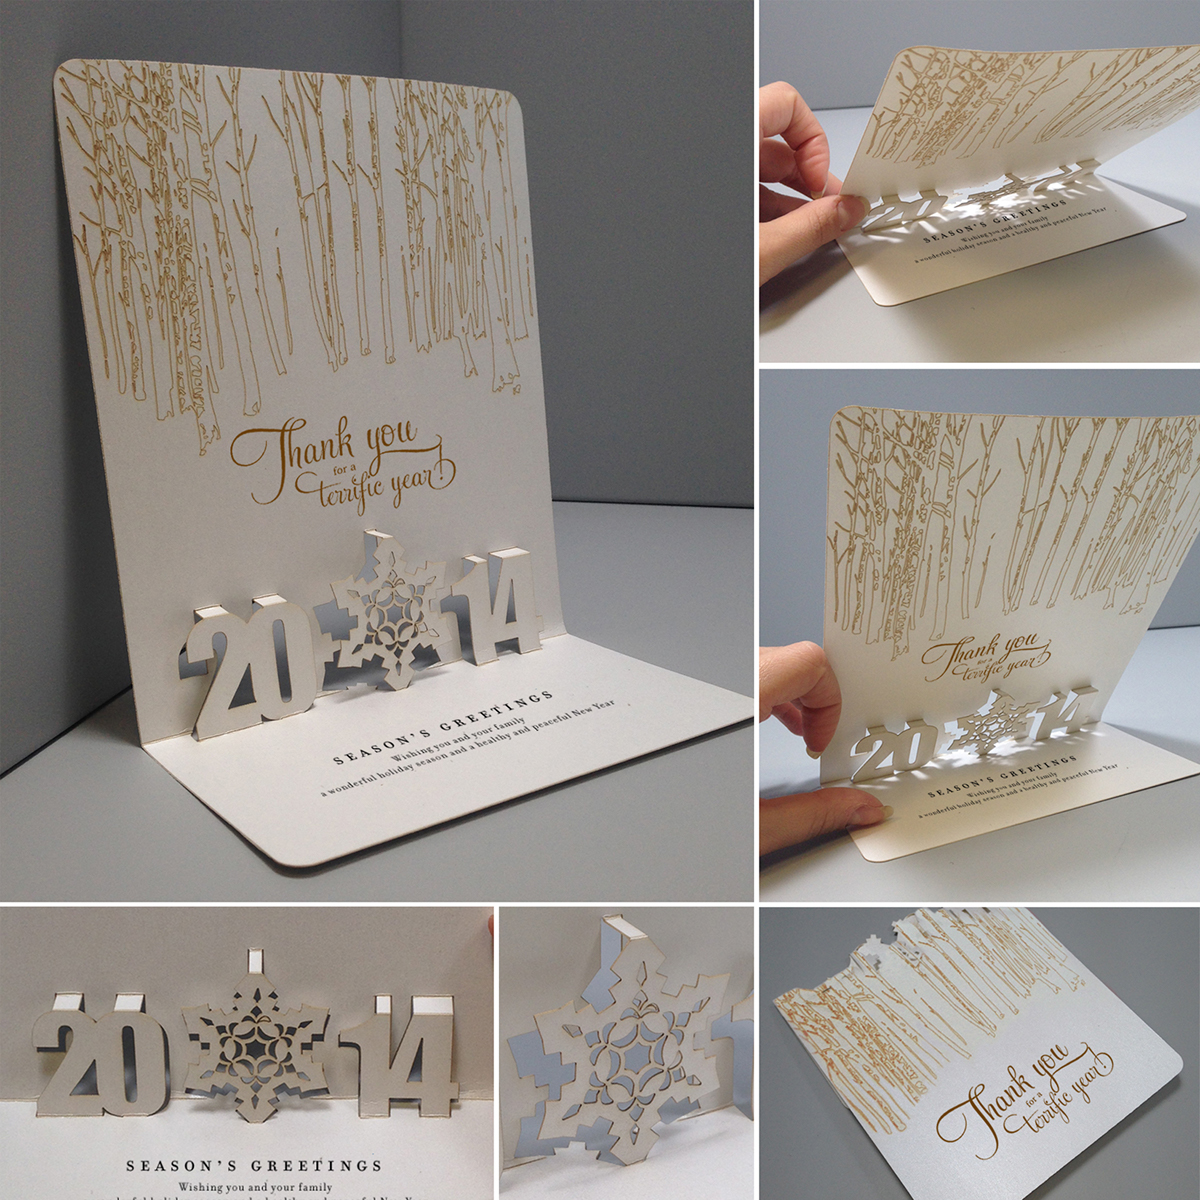 Special Wedding Invitations 2016 On Behance